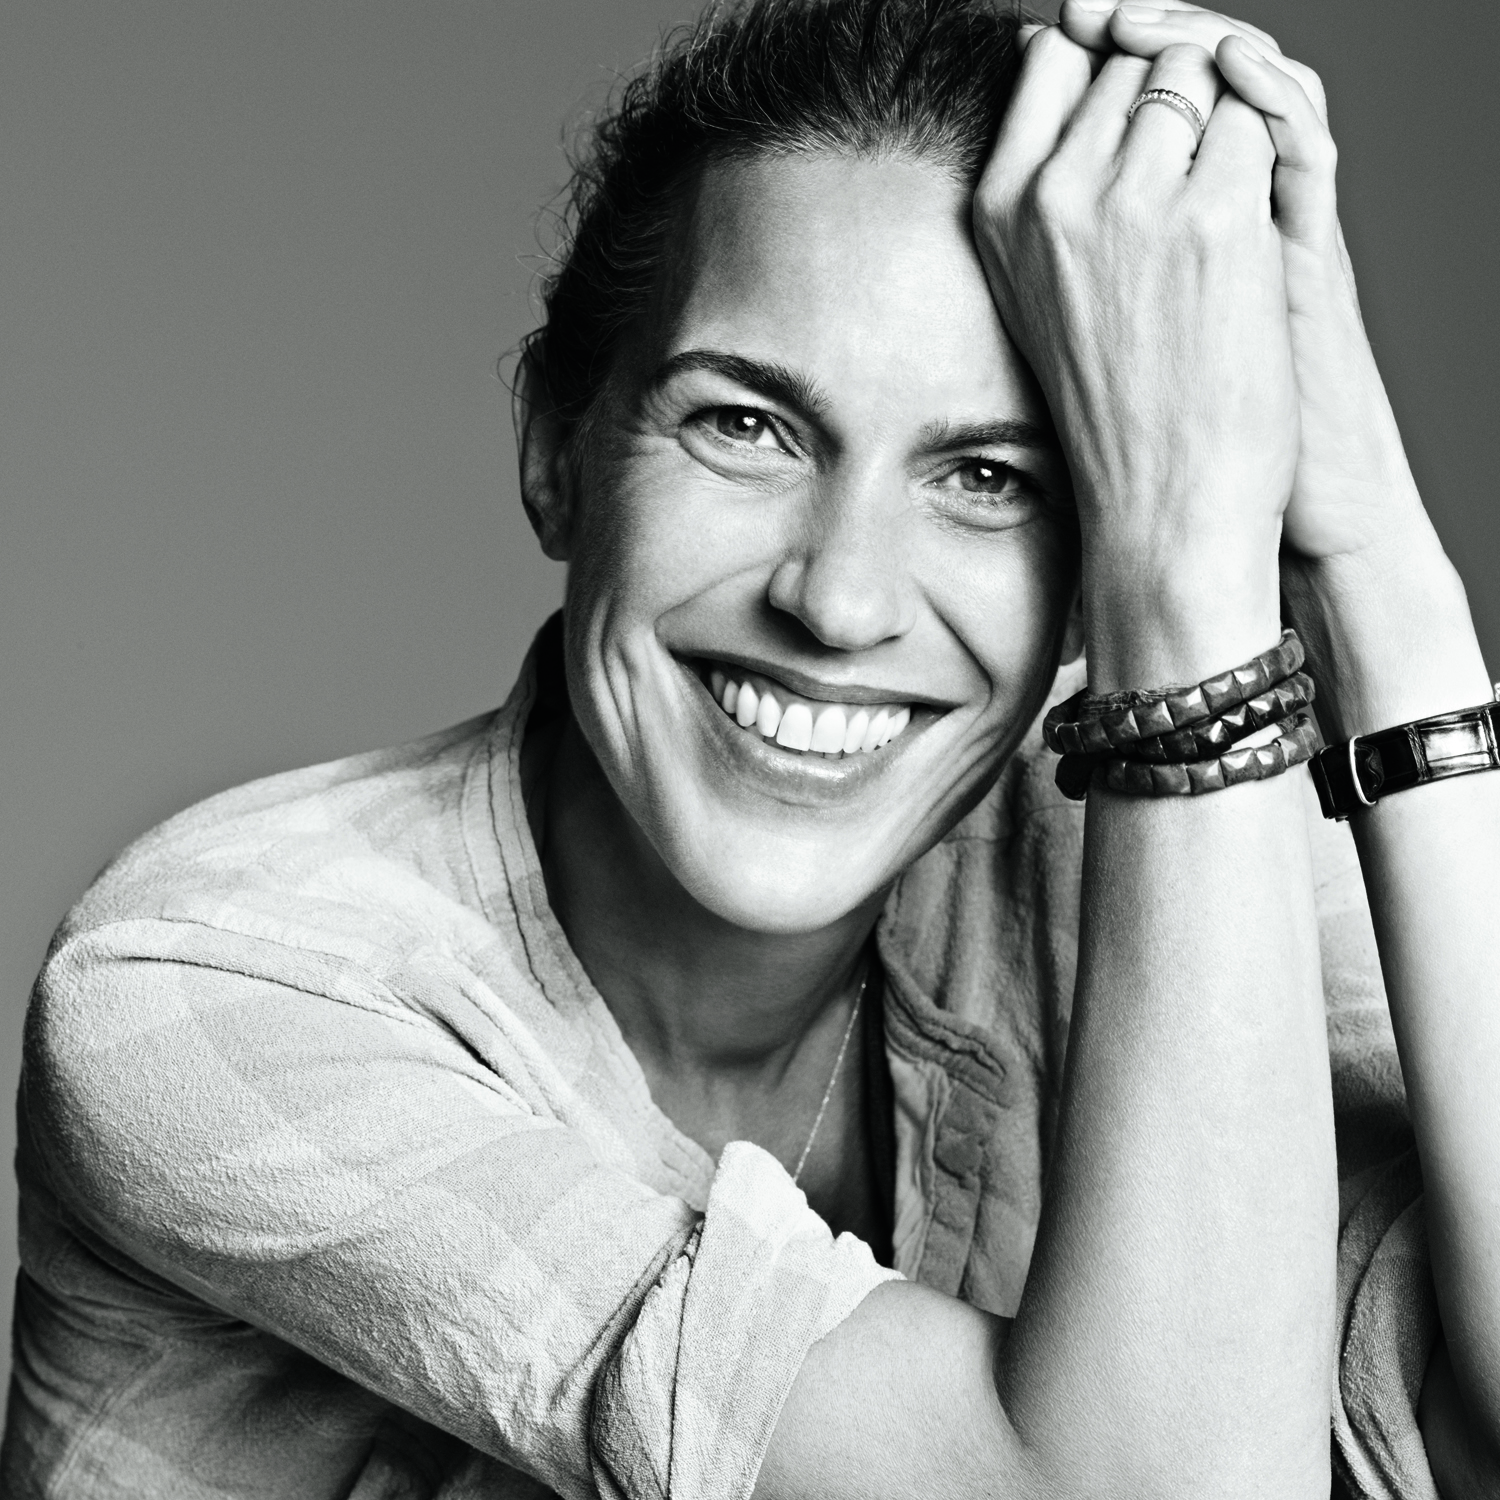 Ask Isabel Marant Anything - Fashion Career Advice